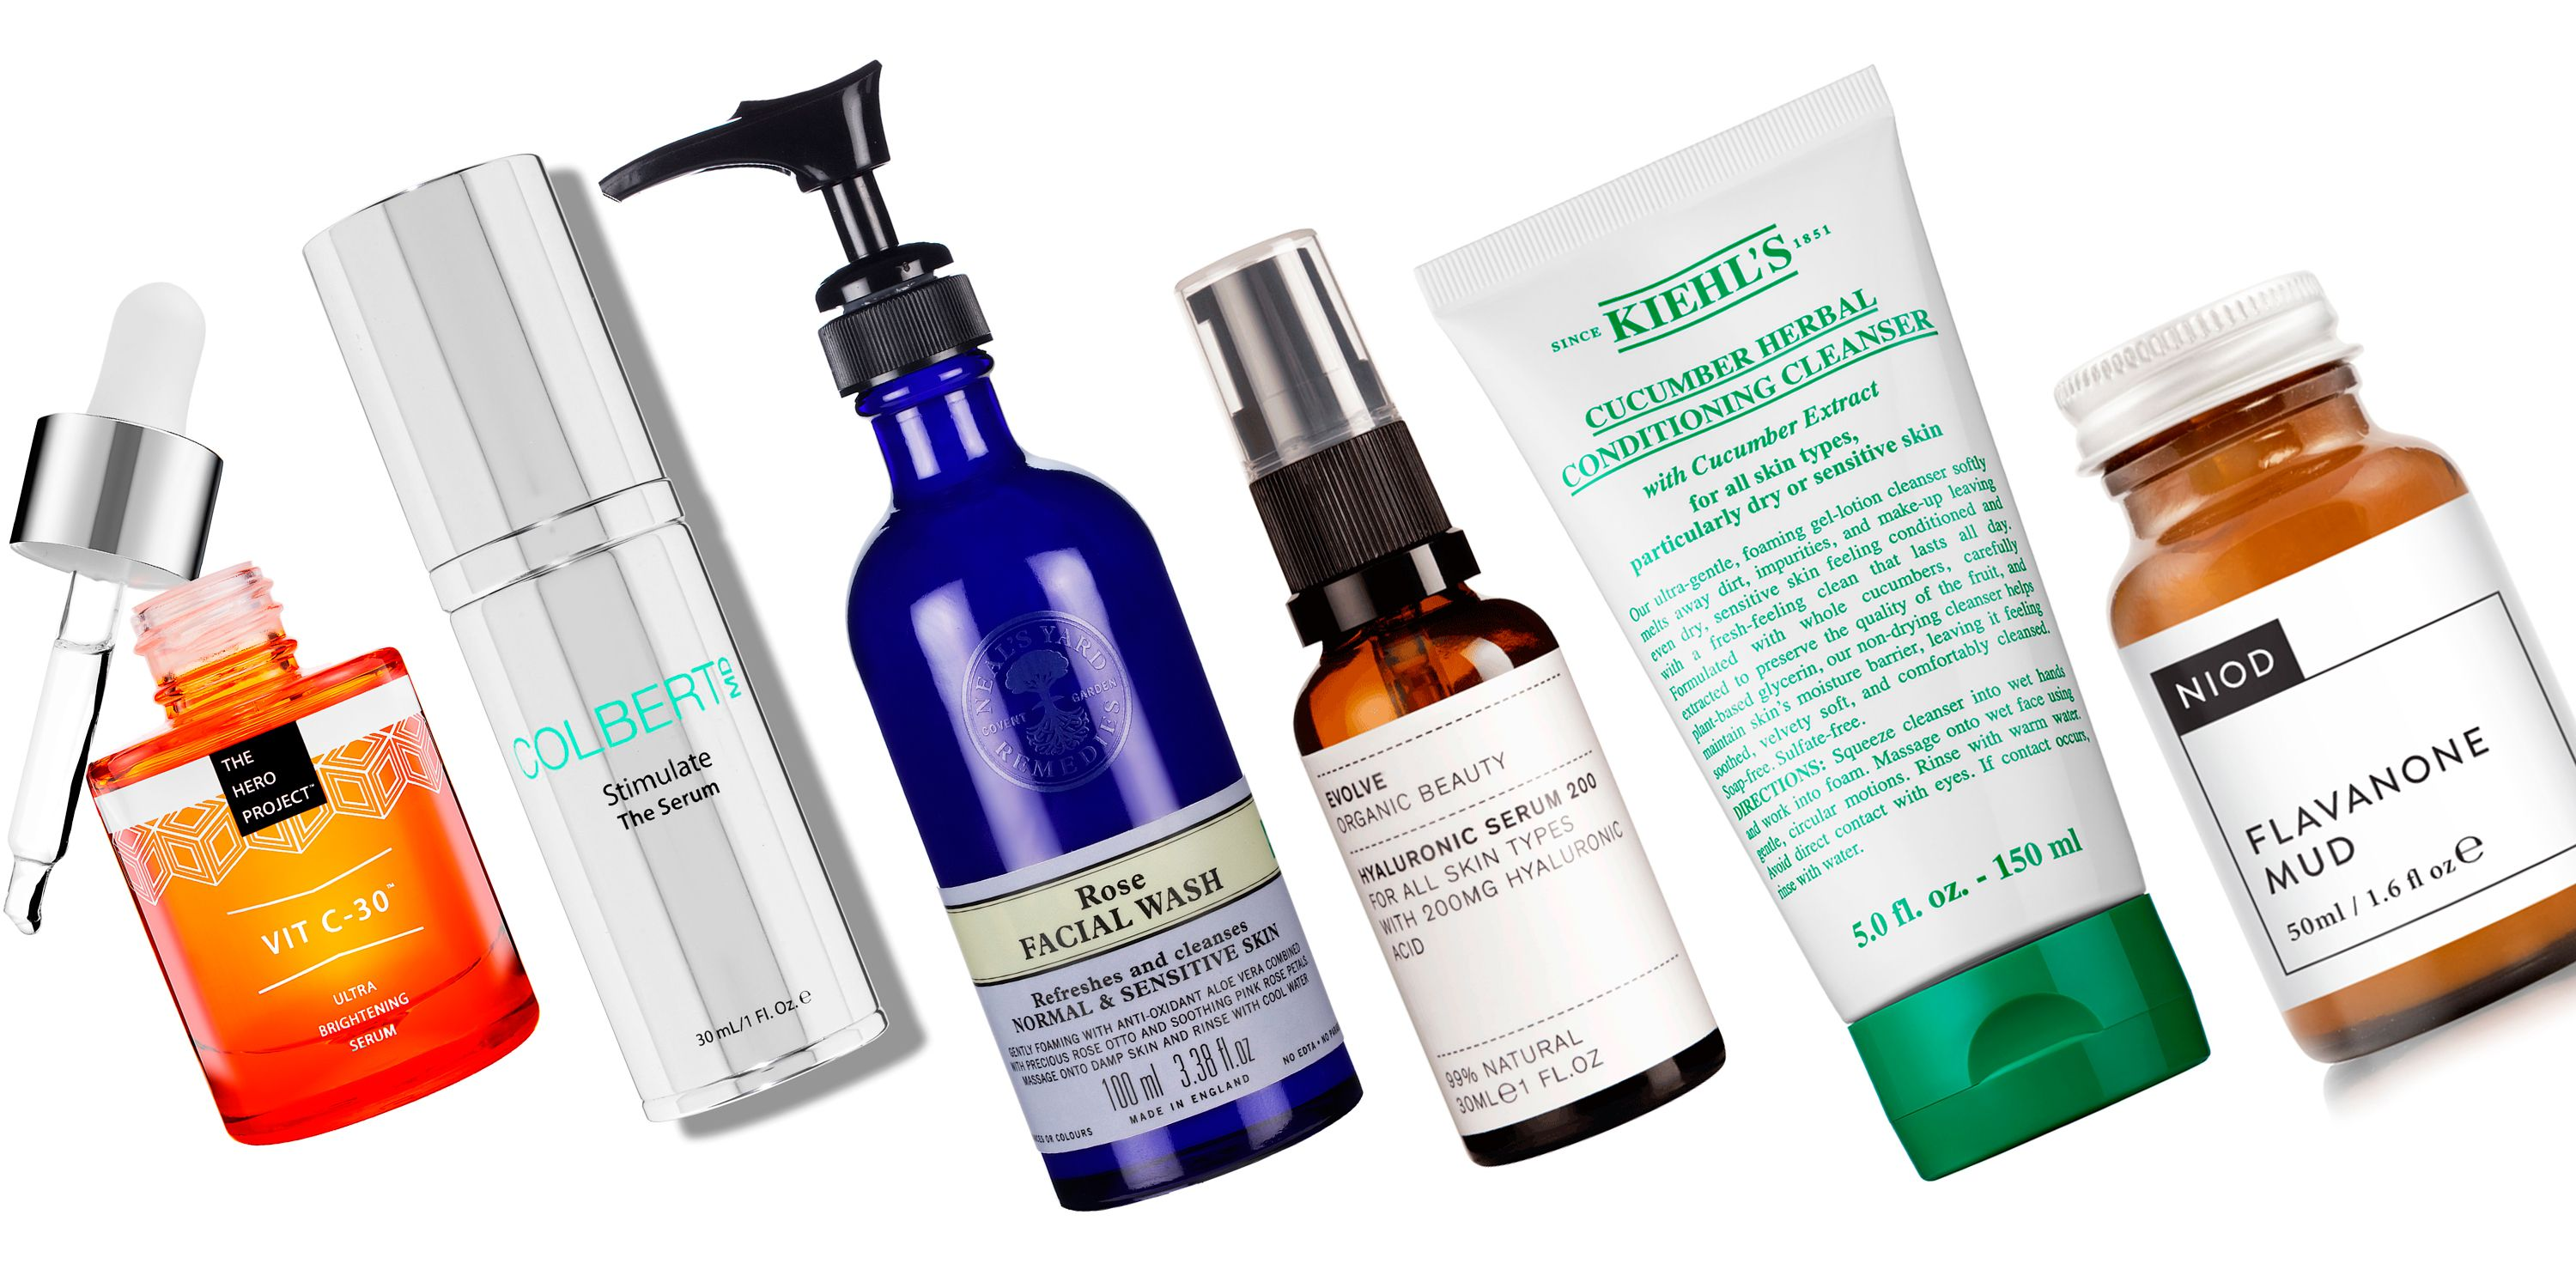 19 holy grail skincare products our Beauty Editors love